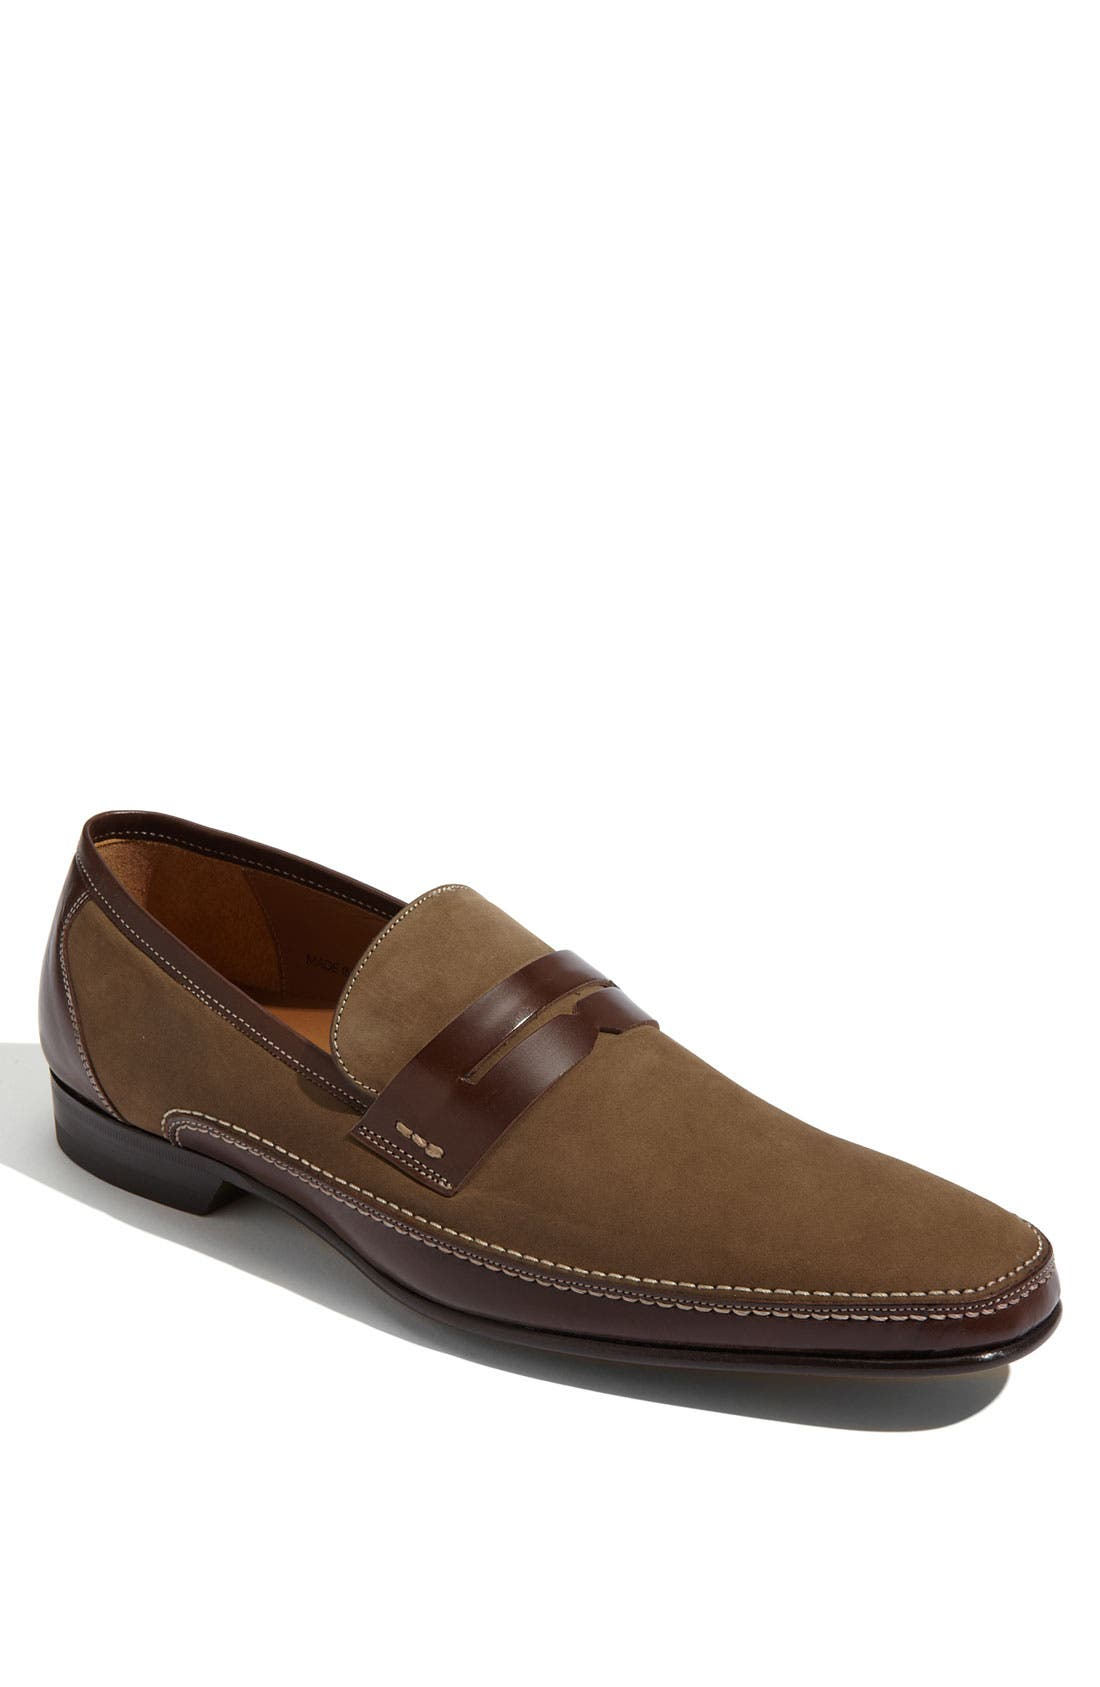 Alternate Image 1 Selected - Mezlan 'Ruskin' Penny Loafer